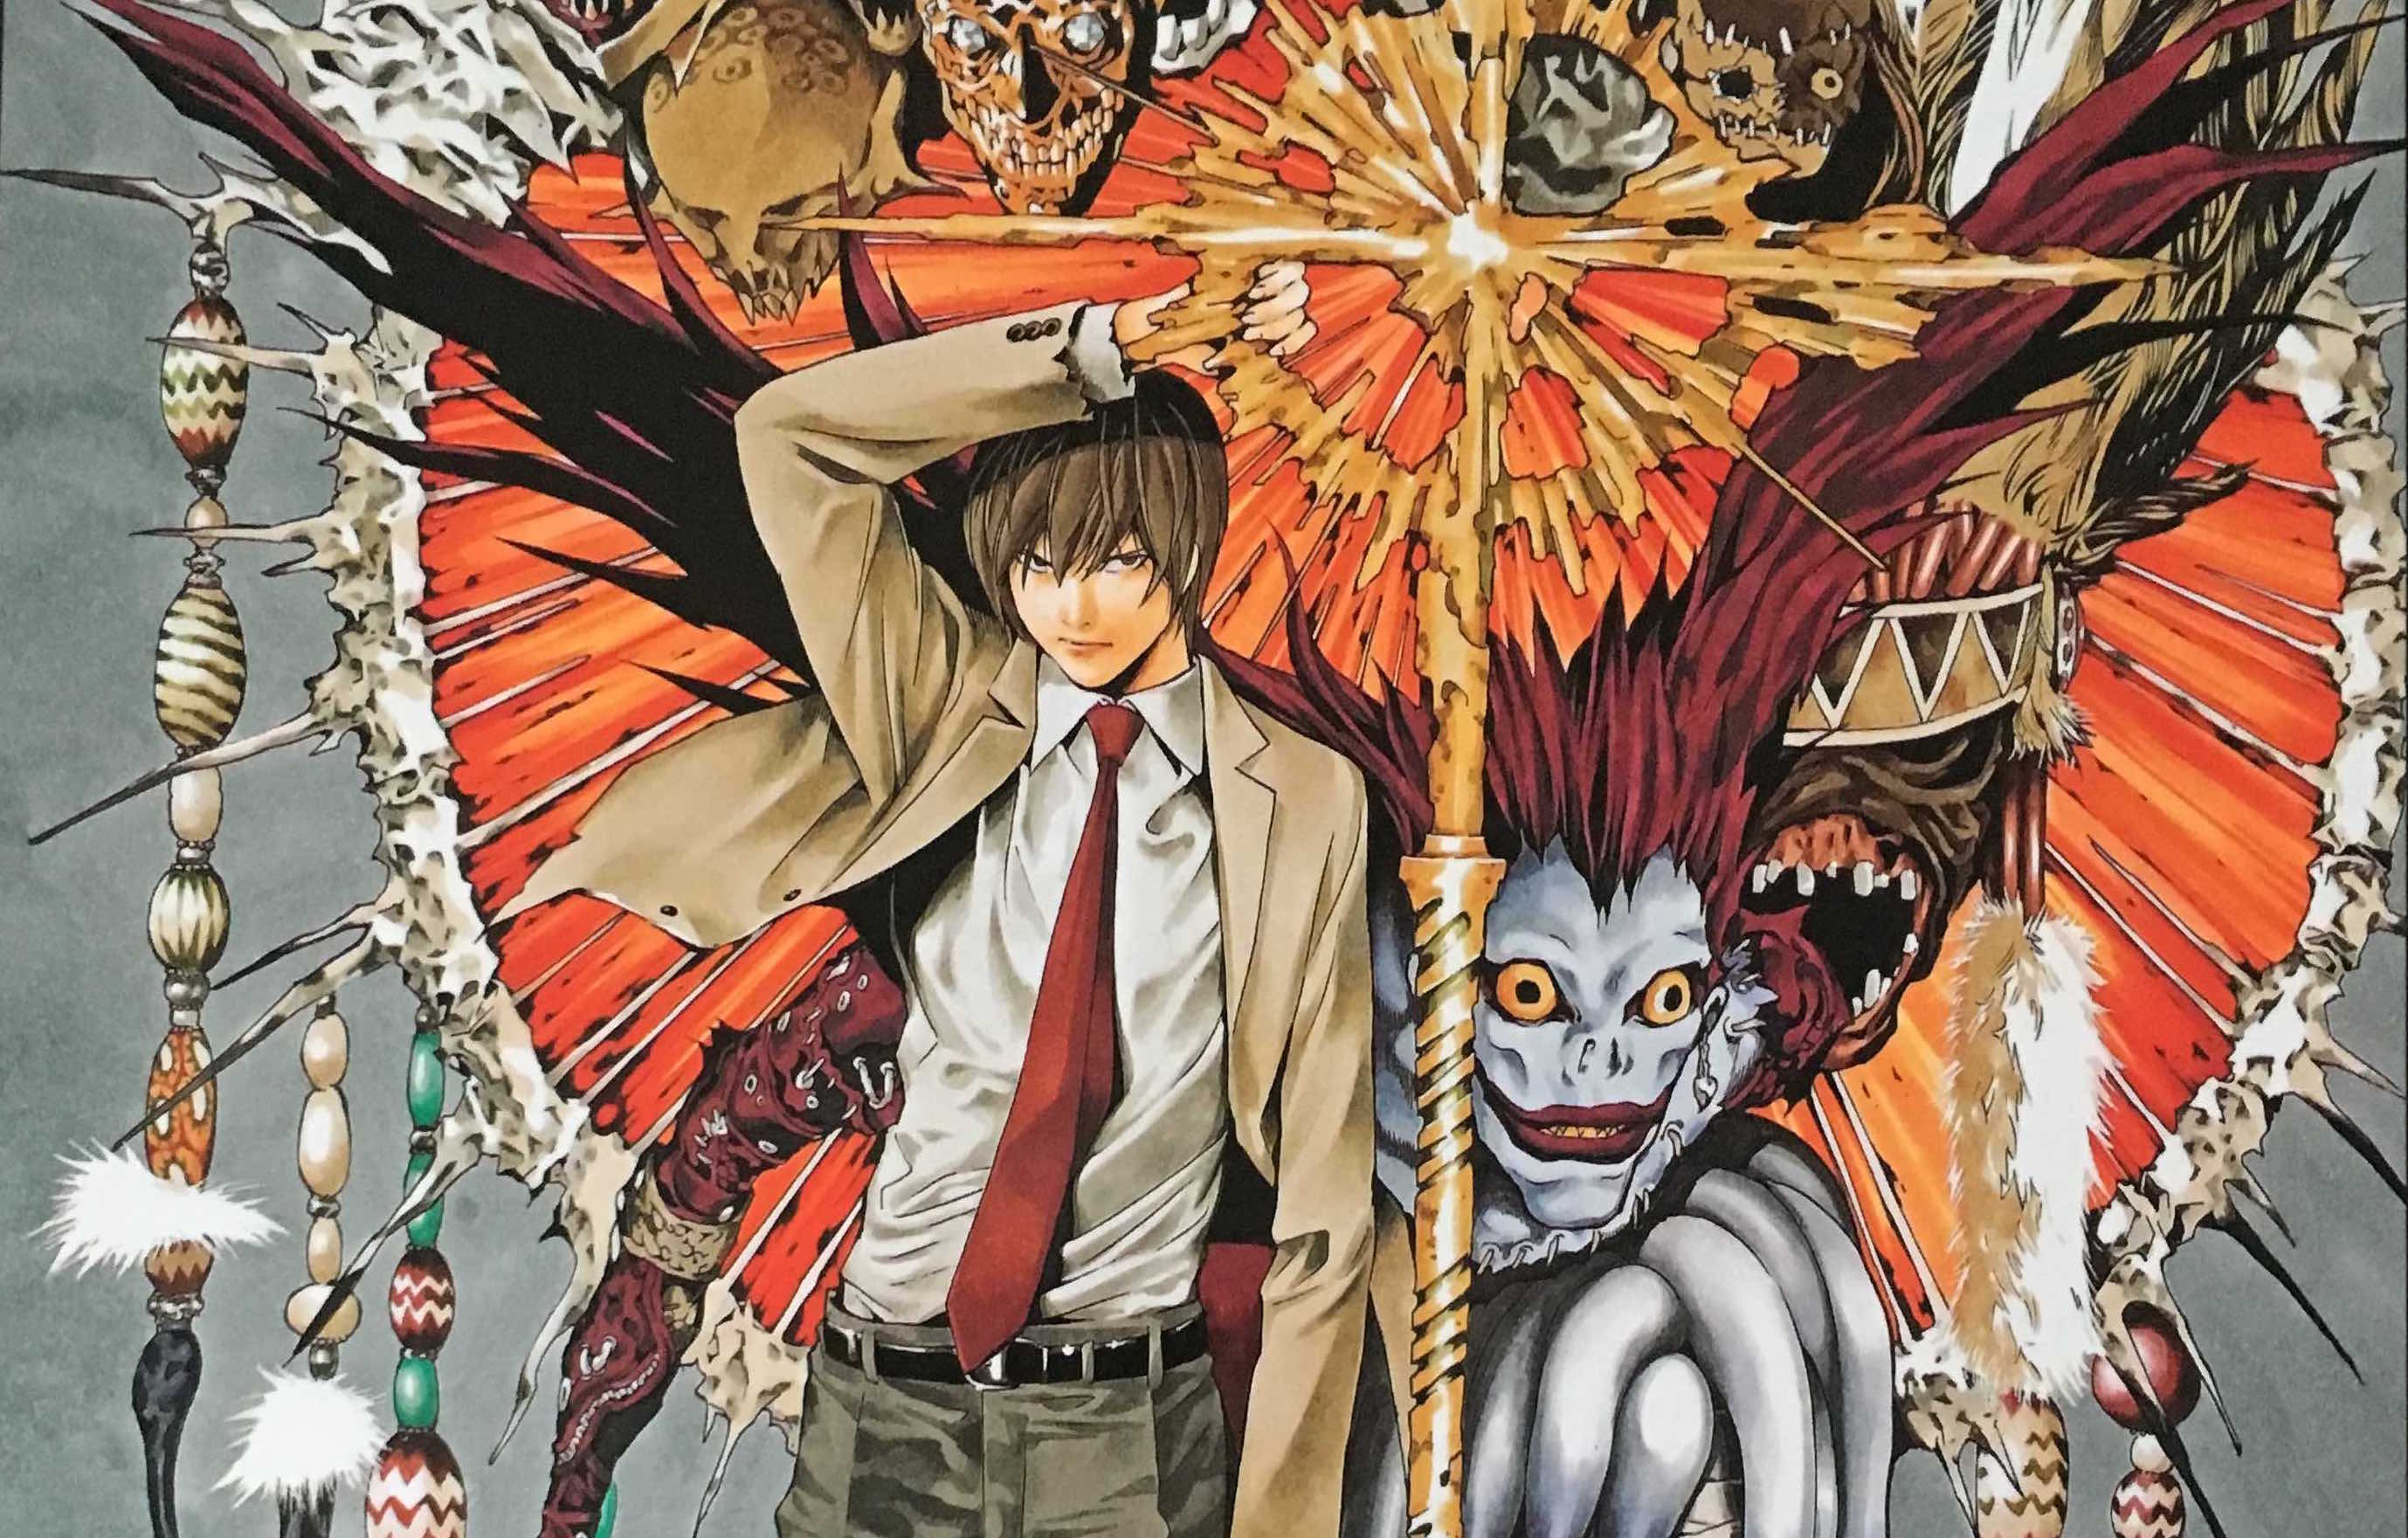 I'm a big fan of the manga Death Note. Not only because the story questioned morality, but because the art was vivid and at times spectacular. The story was intriging too as it showed us what could happen if a common teenager had the power to kill and be influenced by a god. That required a hell of an artistic prowess to pull off with gangly weird gods hanging over people's shoulders. Out this week, we look at Takeshi Obata's art book which displays much of his Death Note covers and full pages in their original size.